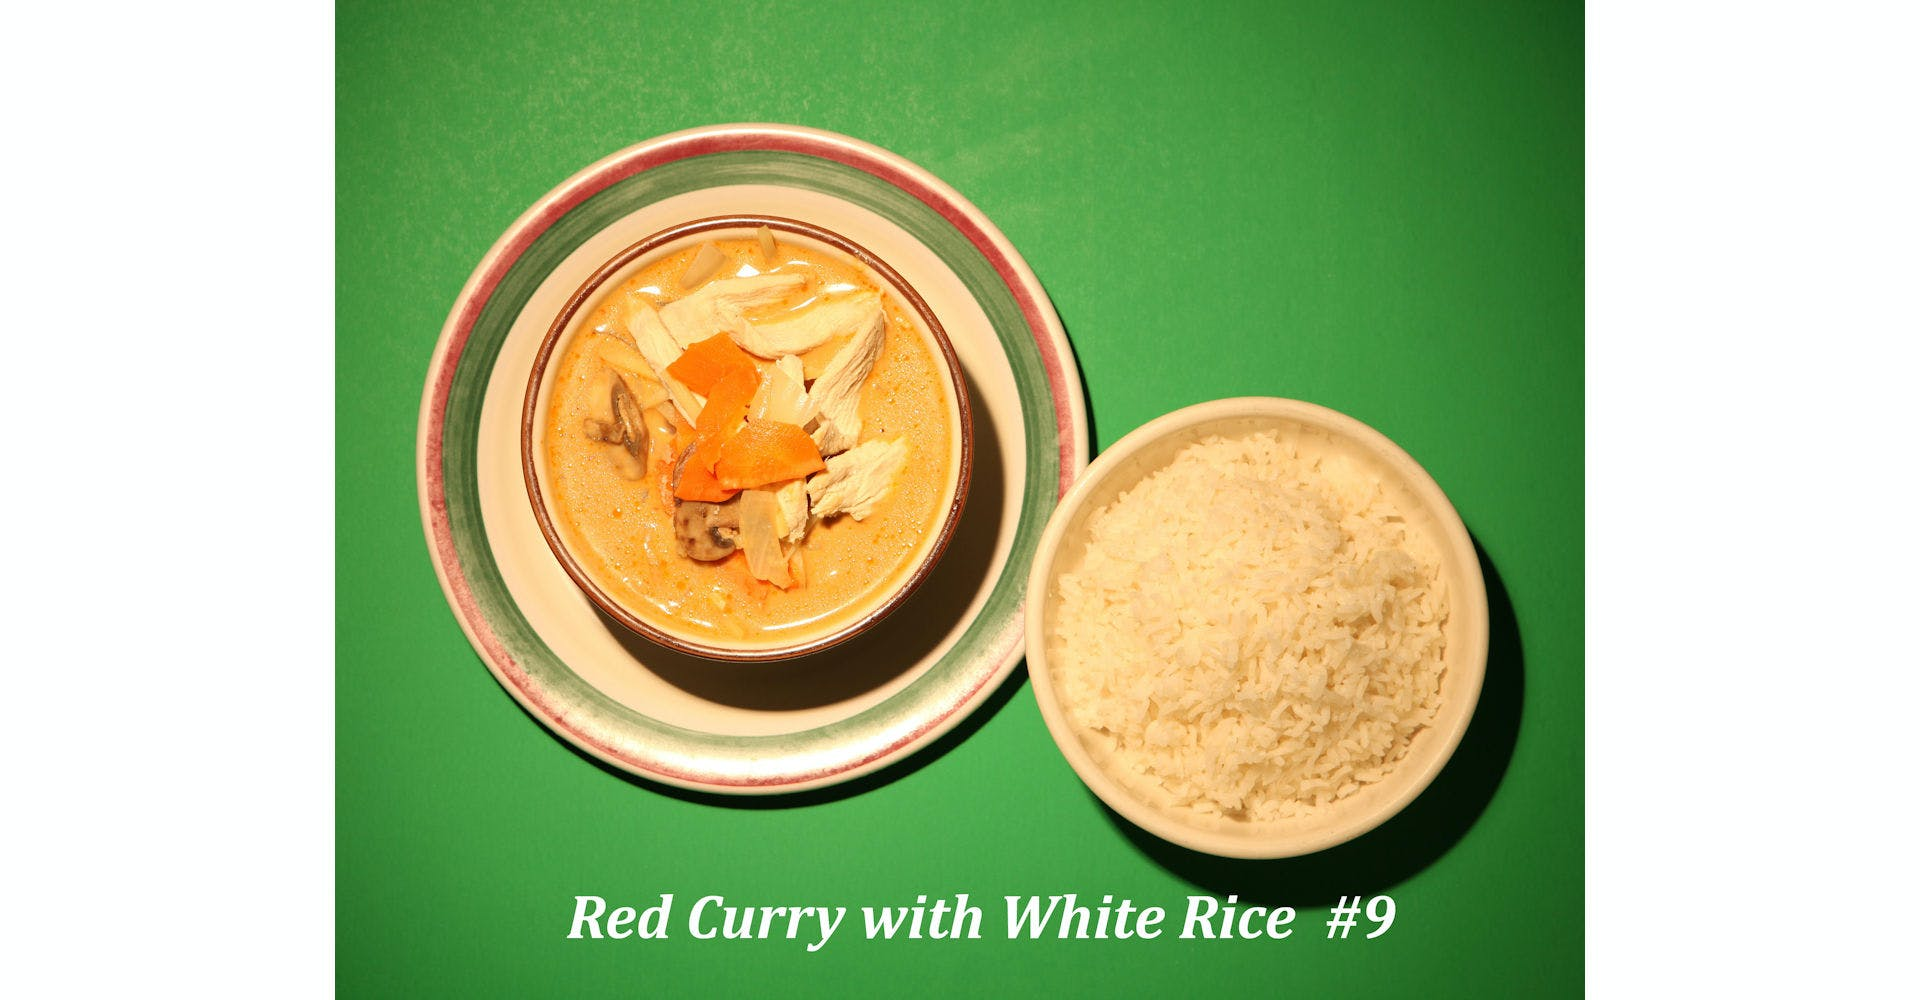 9. Red Curry from Narin's Thai Kitchen in Green Bay, WI